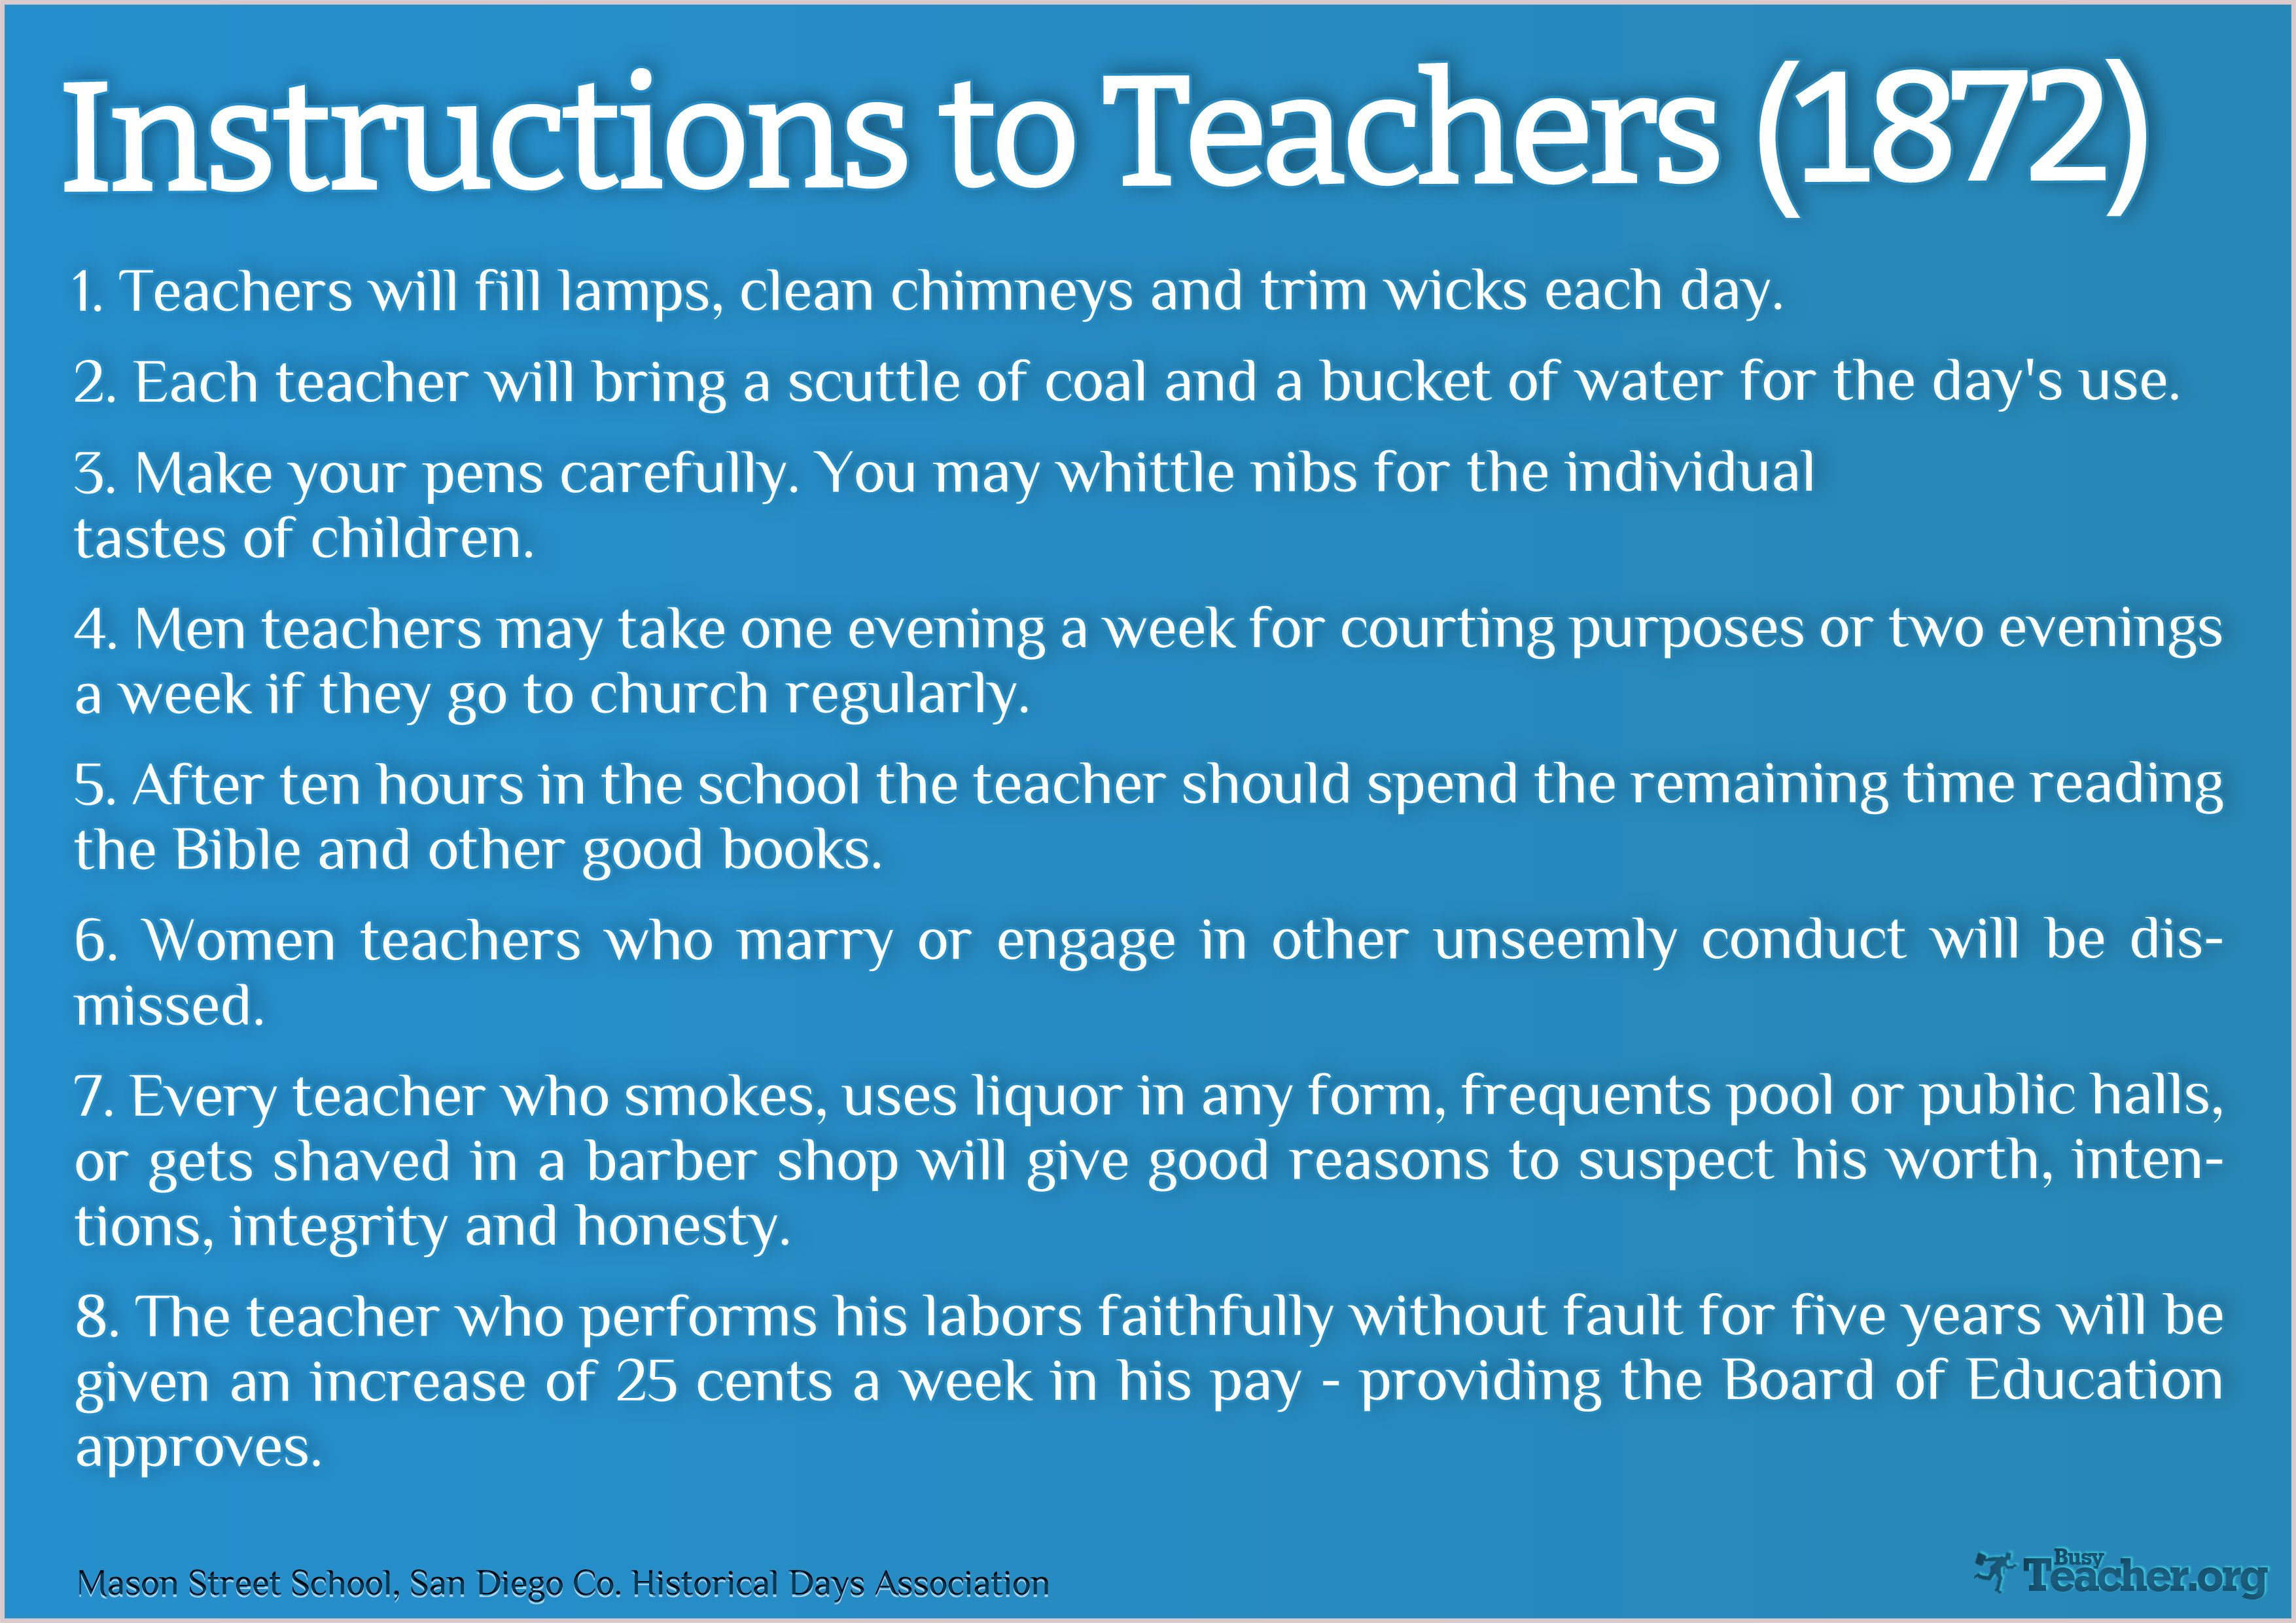 Instructions To Teachers (1872) | School Supplies | Teacher